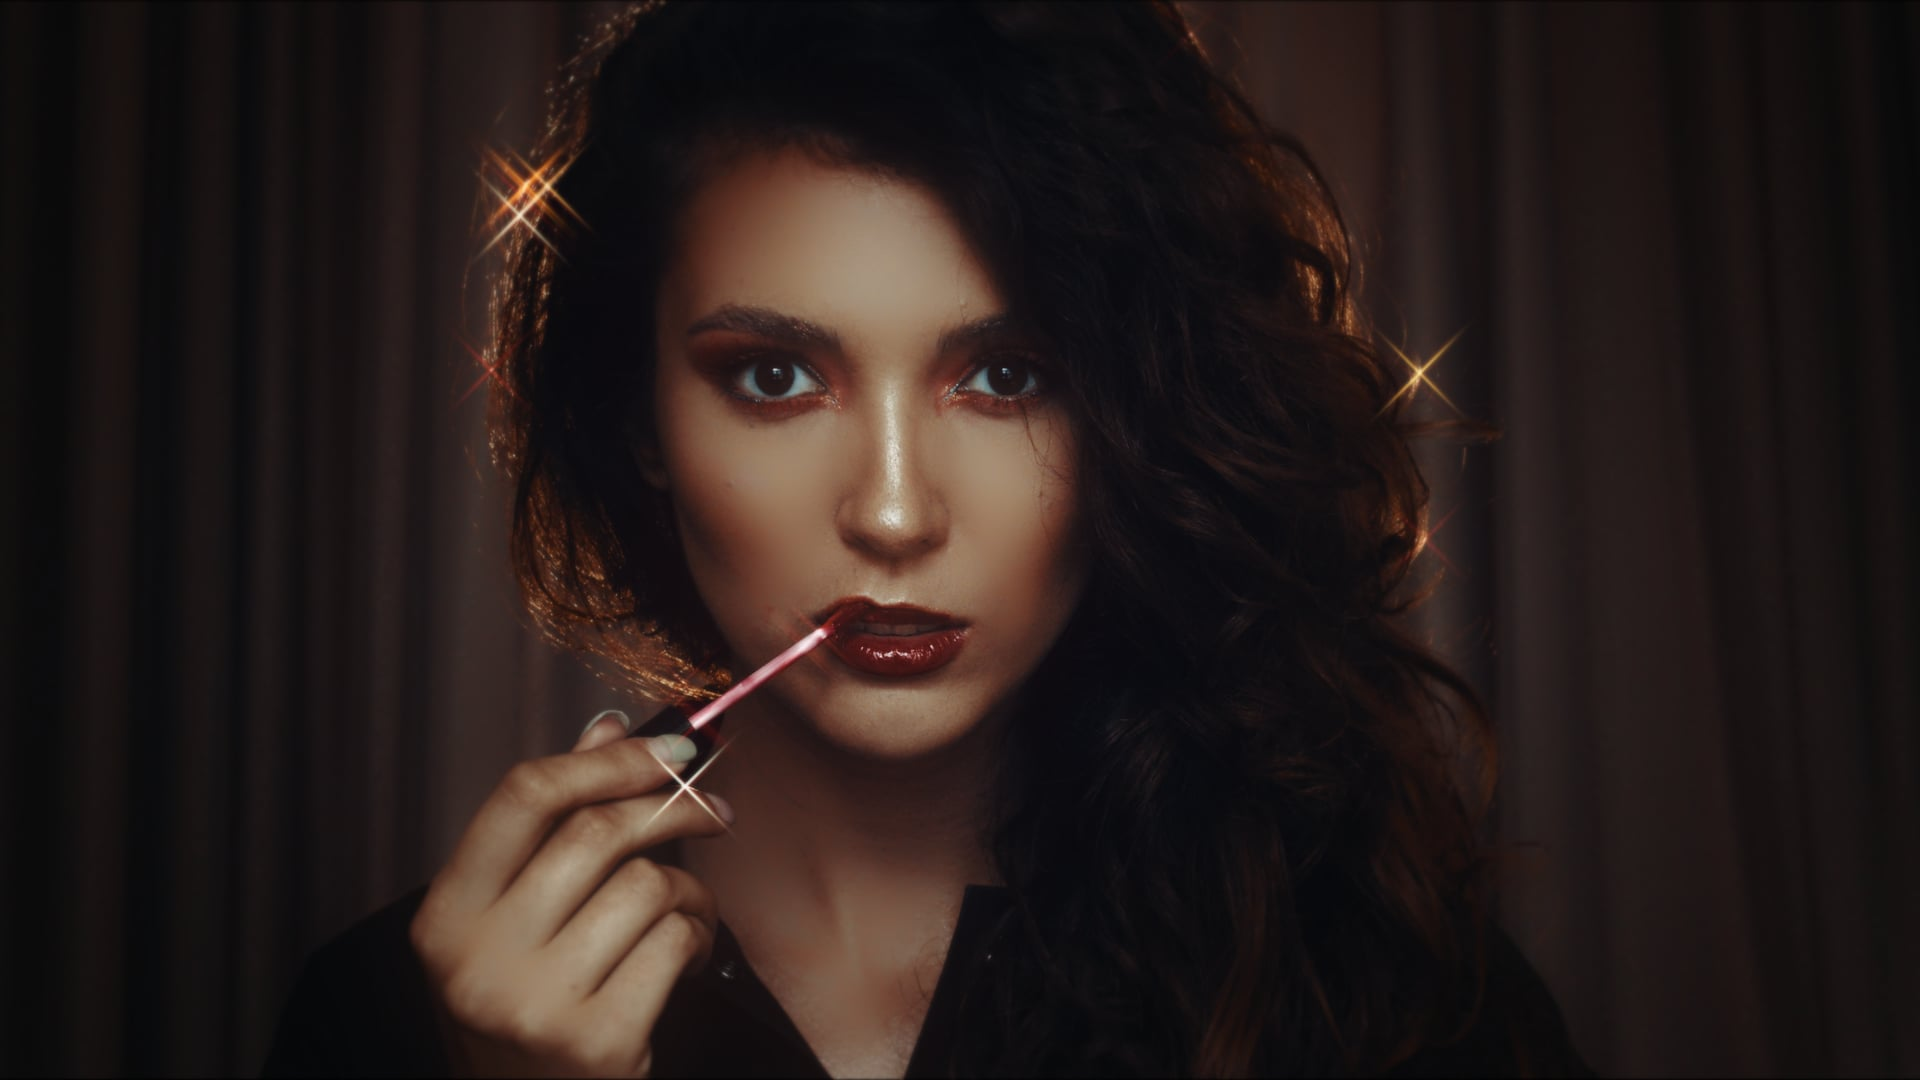 Commercial for Kylla Beauty